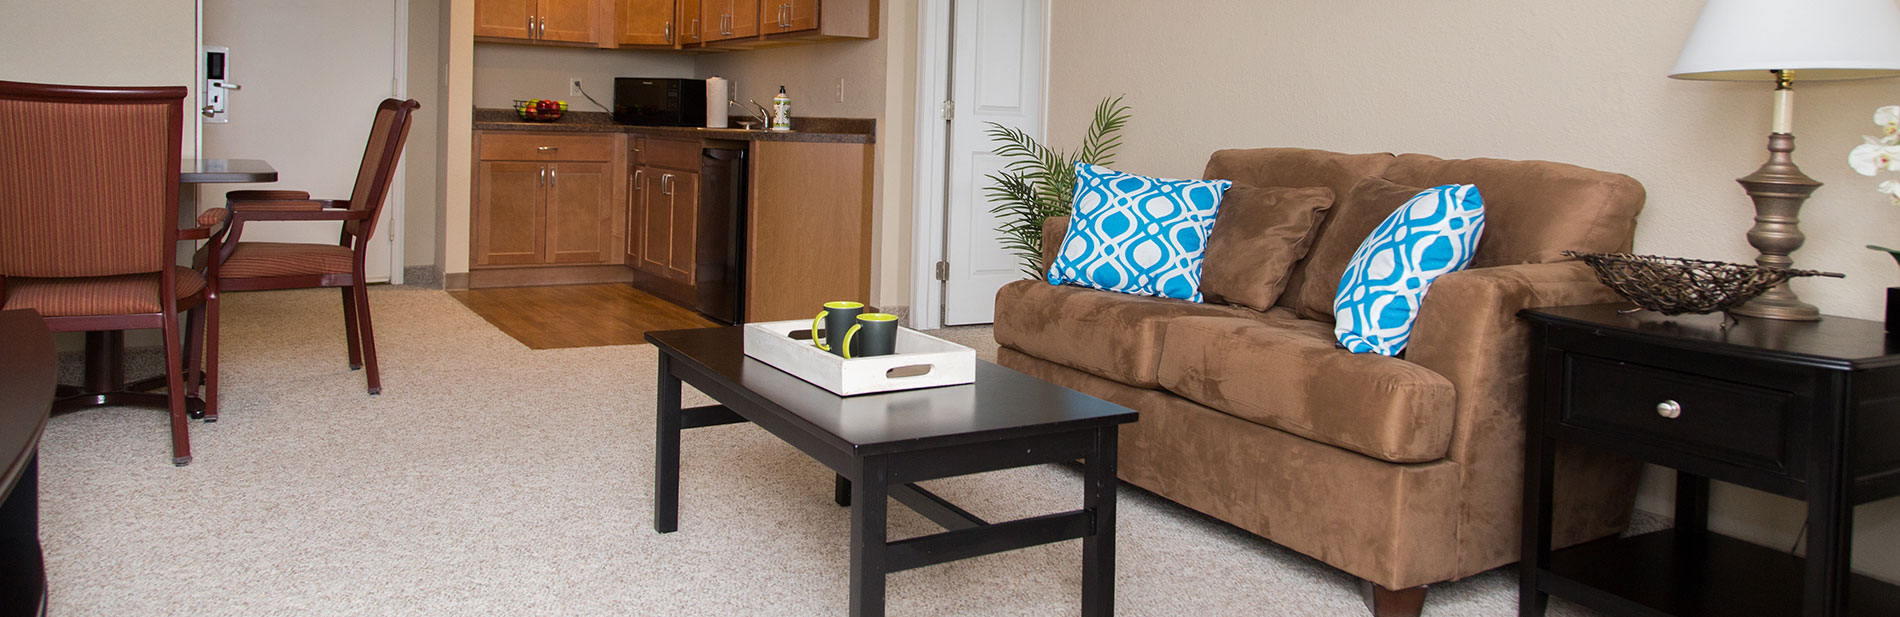 With All The Amenities In One Location, There Is Nothing To Stress About.  LEARN MORE U003e